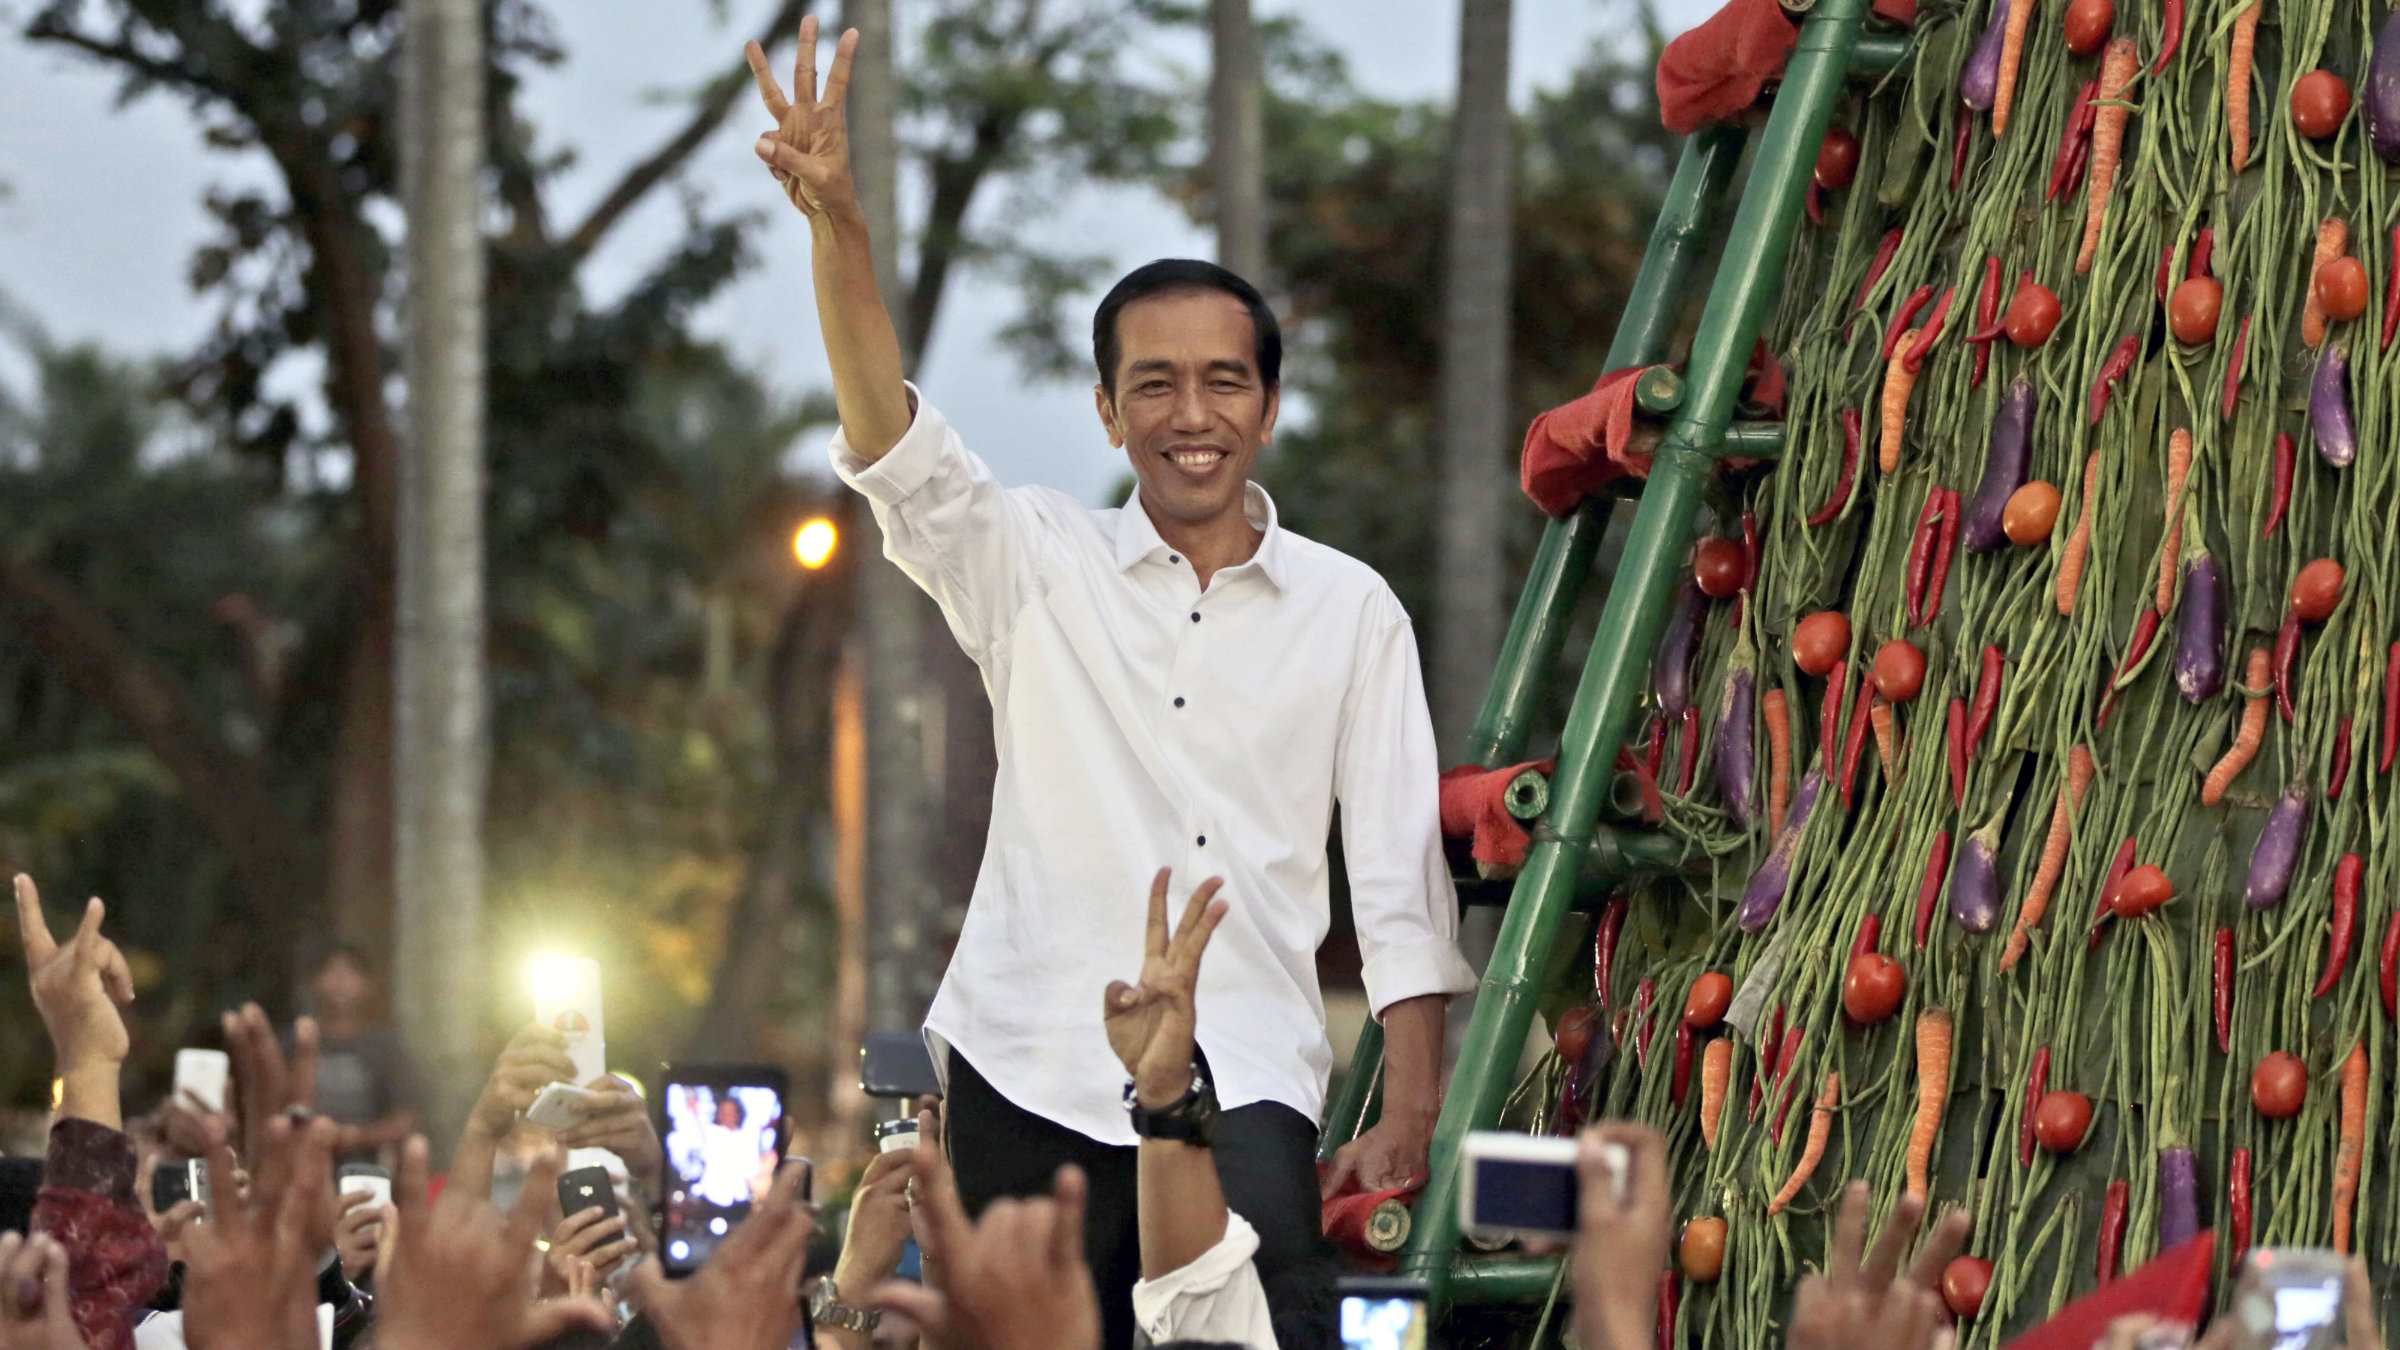 Indonesian president-elect Joko Widodo greets supporters with his 'three-finger greeting' symbolizing the third of Indonesia's five principles.